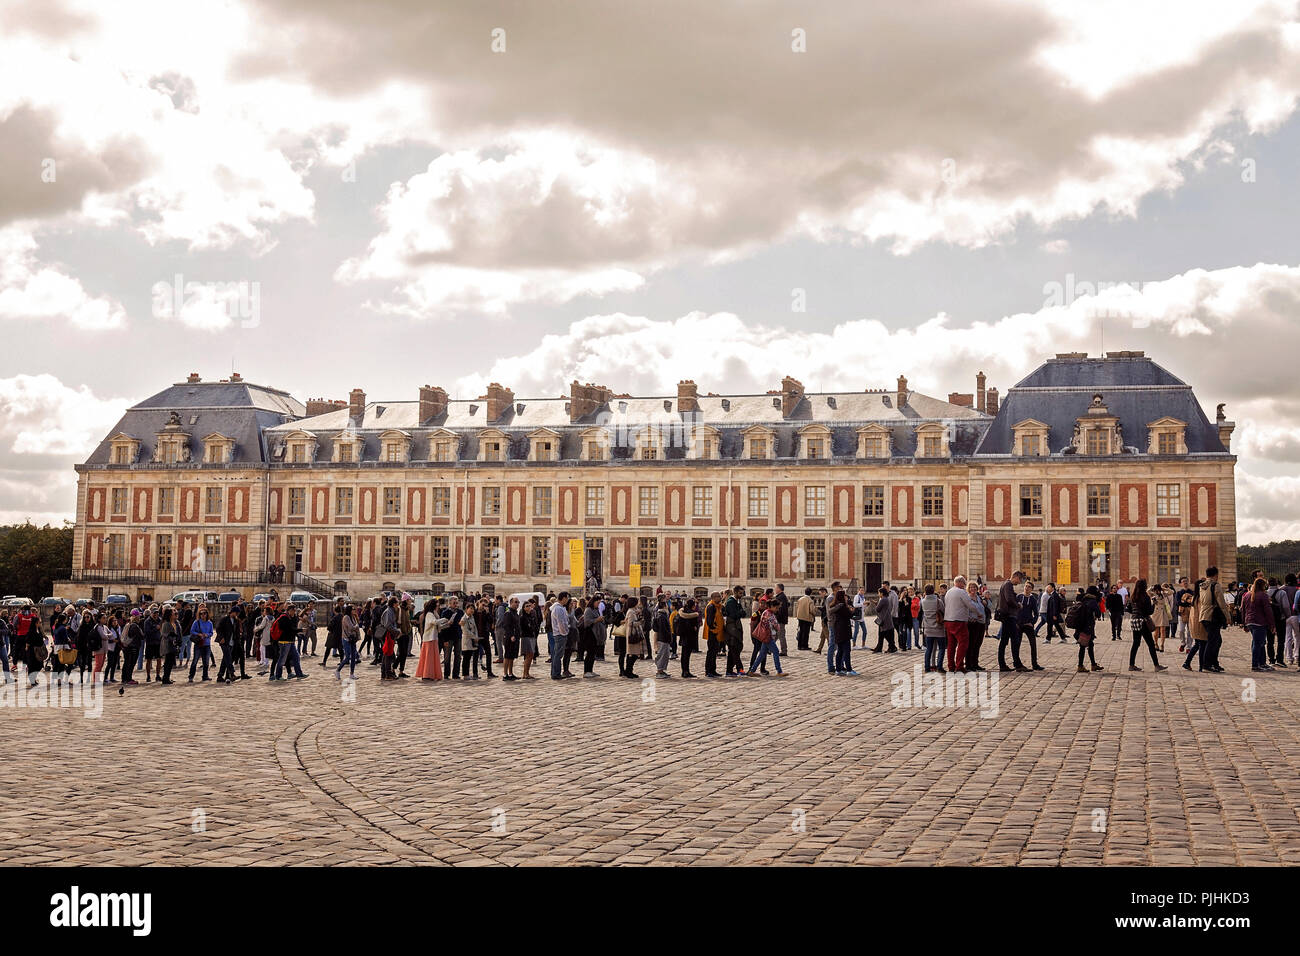 Throngs of tourists lining up to enter the famous Chateau de Versailles in Paris - Stock Image